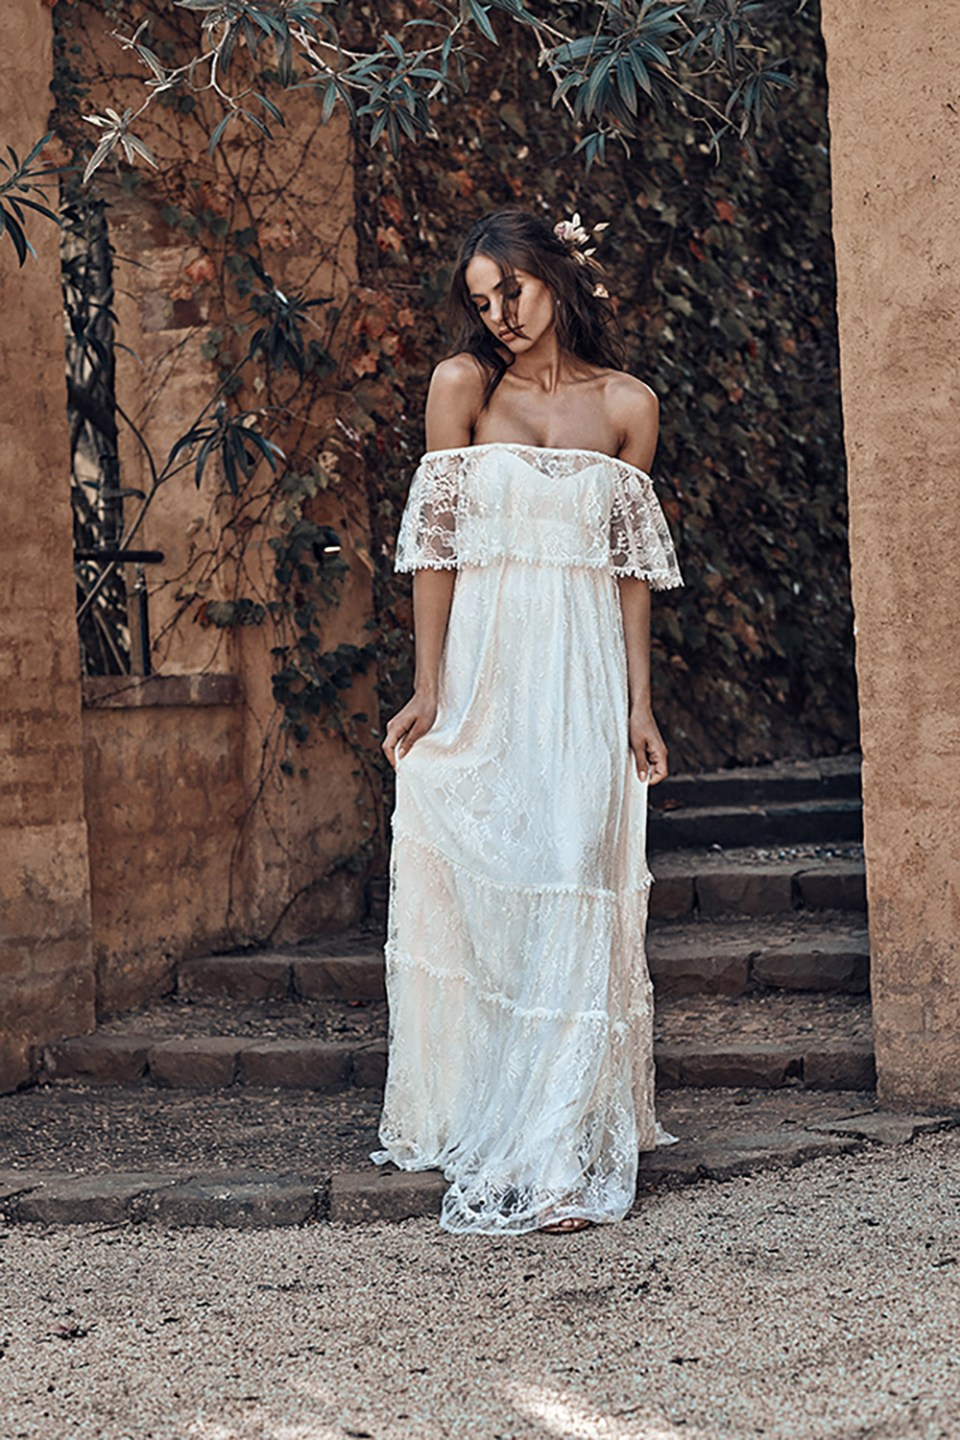 Franca - Grace Loves Lace 2018 Bridal Collection. www.theweddingnotebook.com